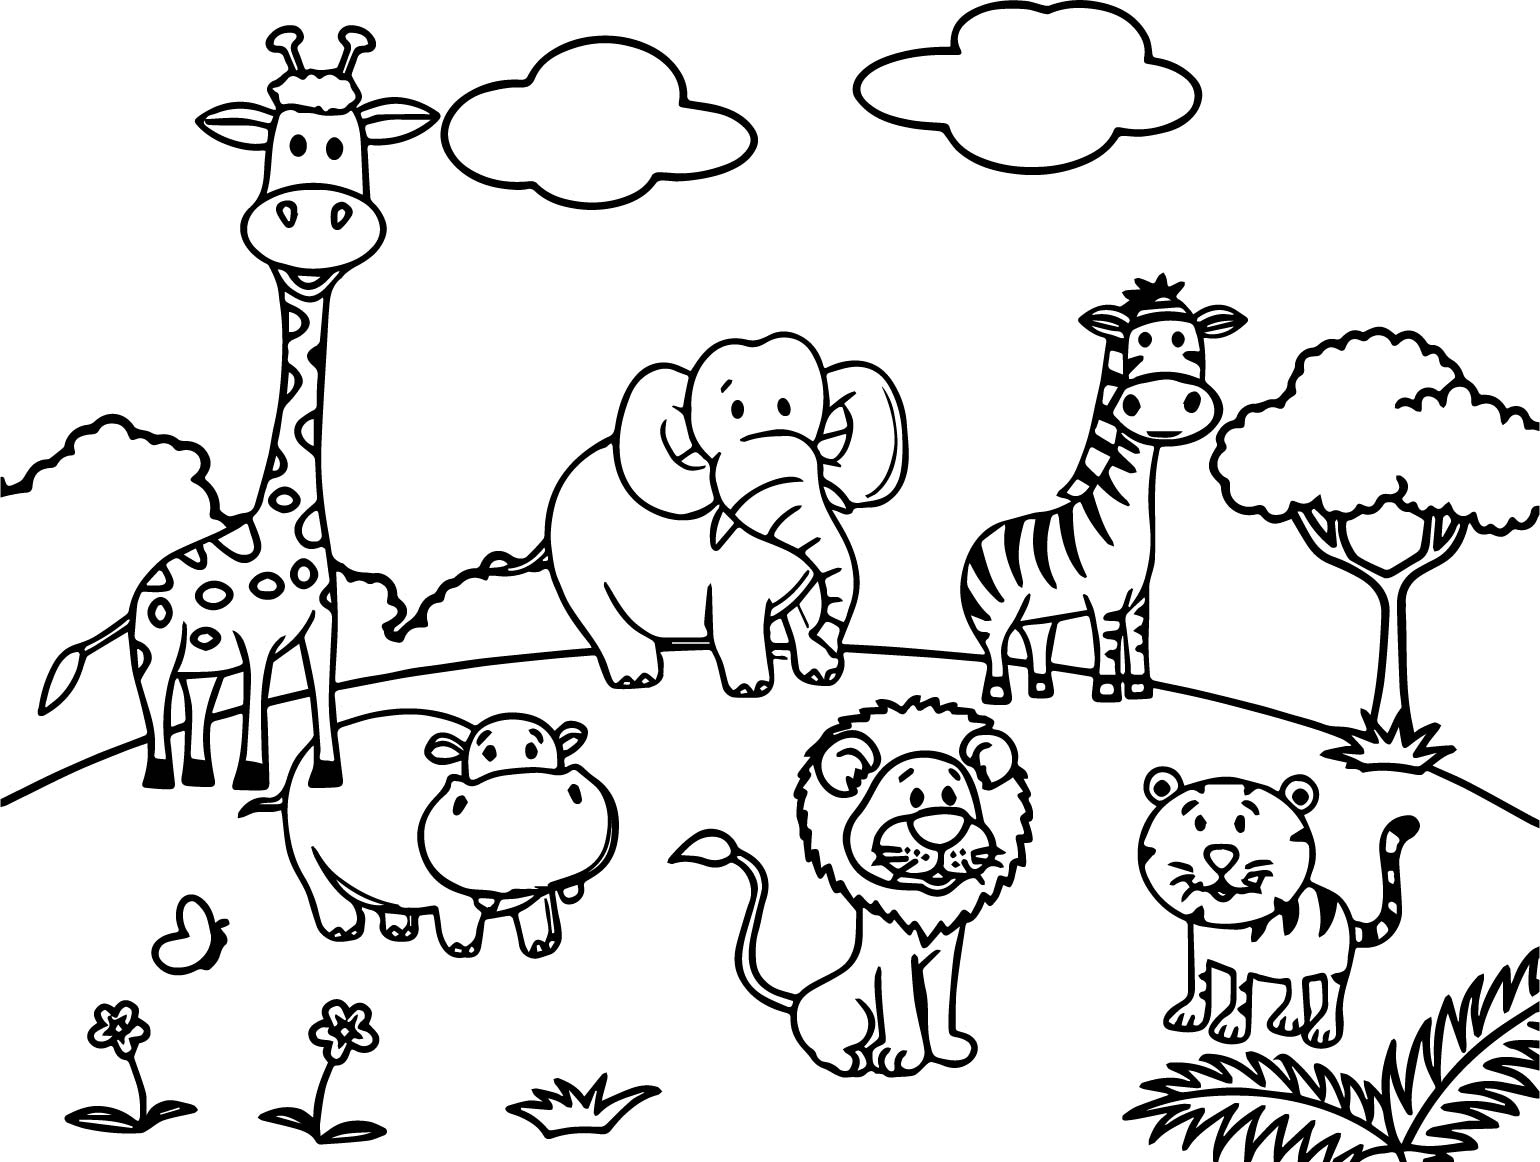 cartoon zoo animals coloring pages at free printable colorings pages to print. Black Bedroom Furniture Sets. Home Design Ideas